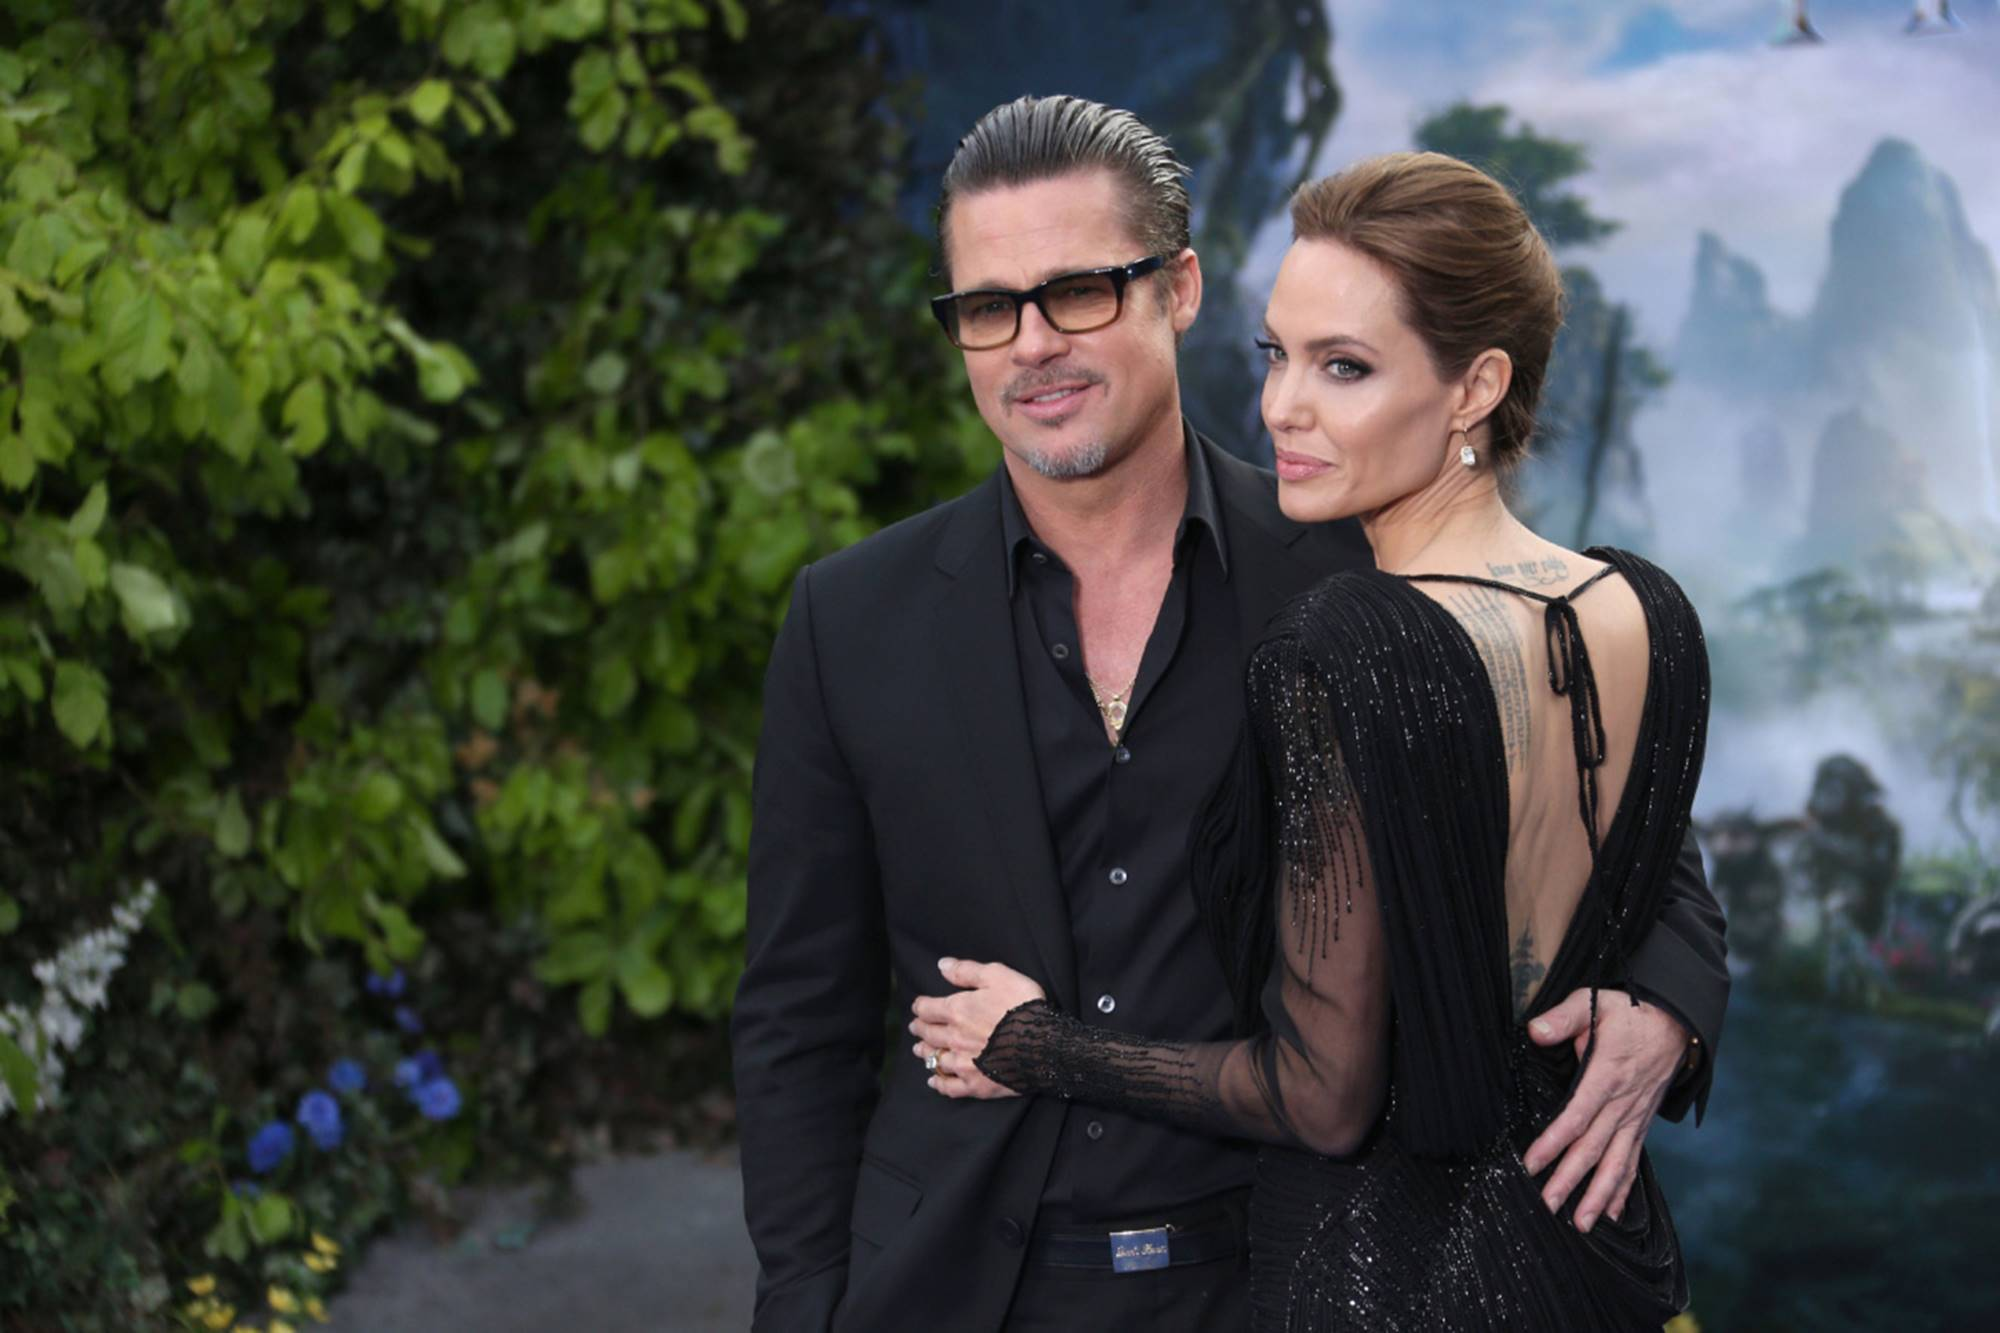 """hurt-brad-pitt-has-a-hard-time-believing-angelina-jolie-did-not-invite-him-to-daughter-zaharas-birthday-party"""